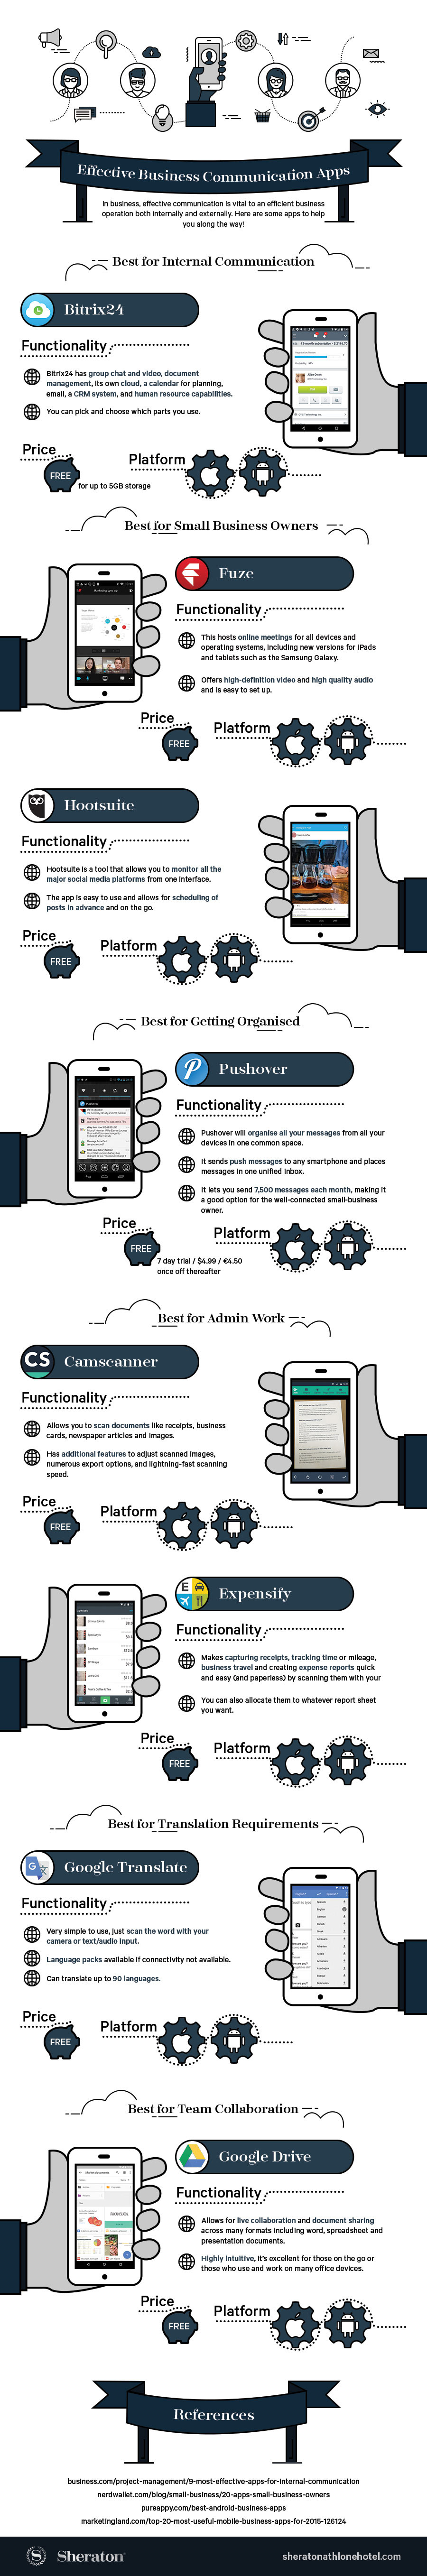 Effective-Business-Communication-Apps-Infographic